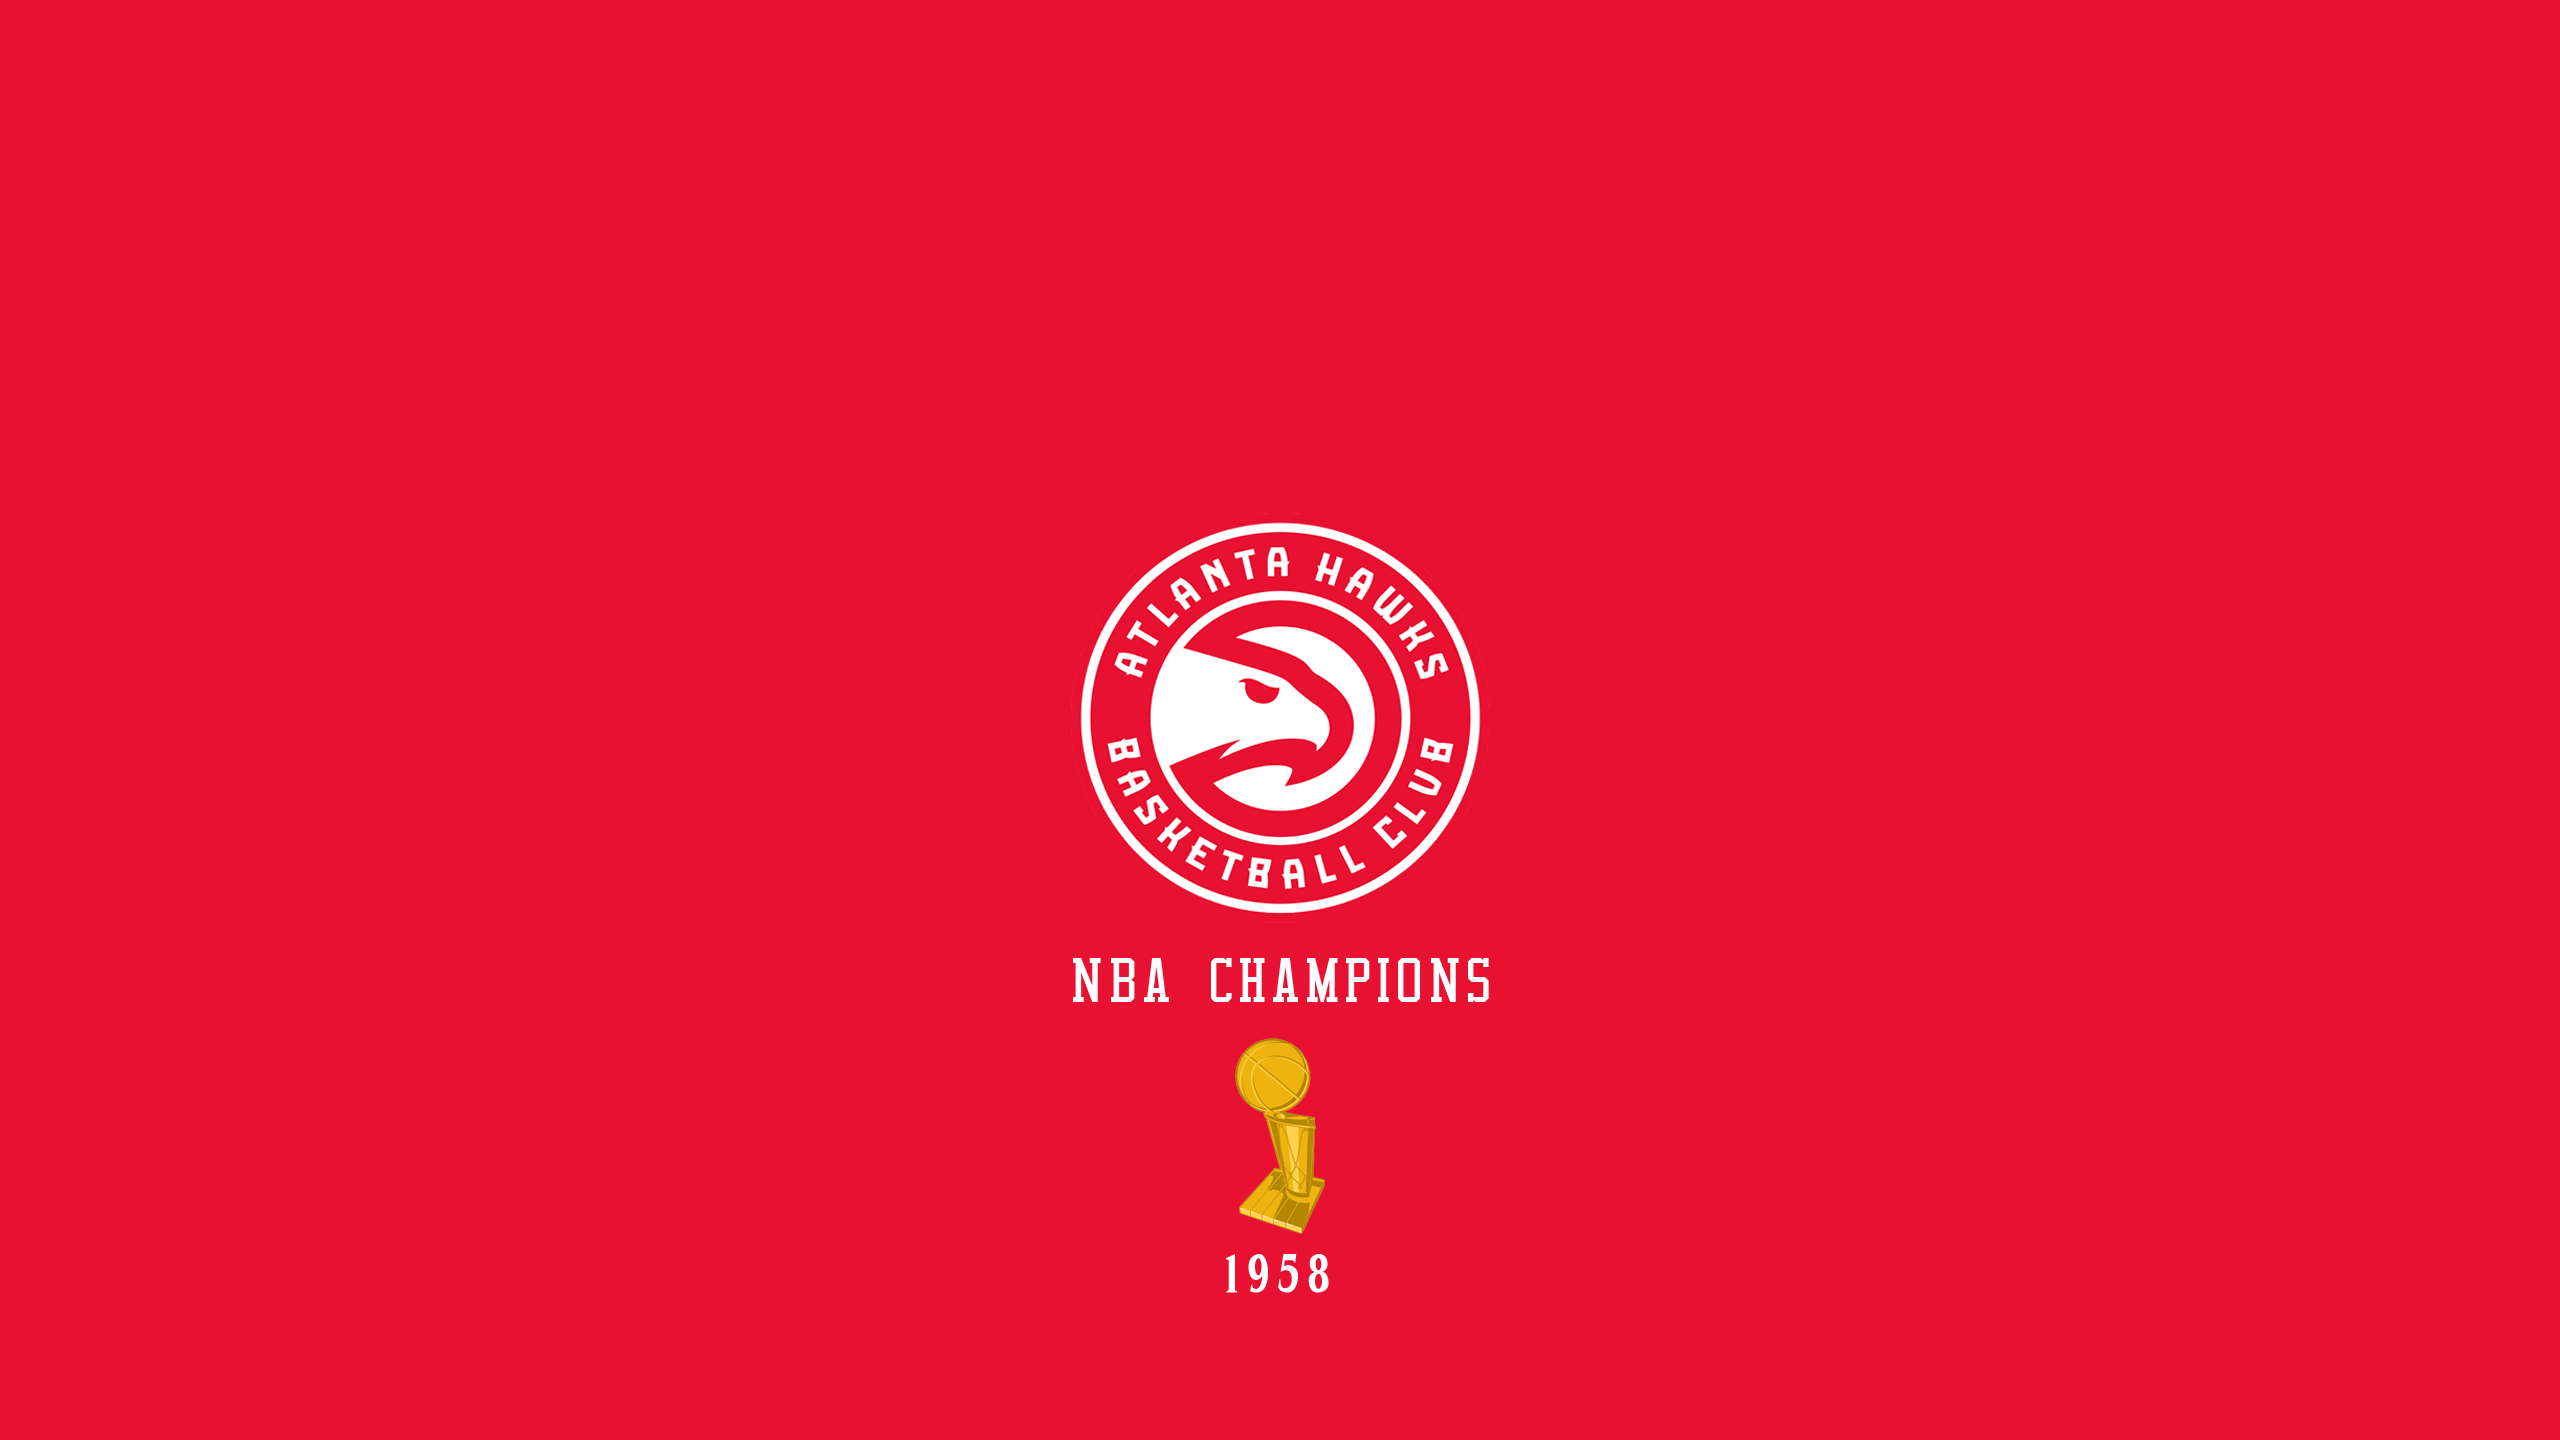 Atlanta Hawks - NBA Champs